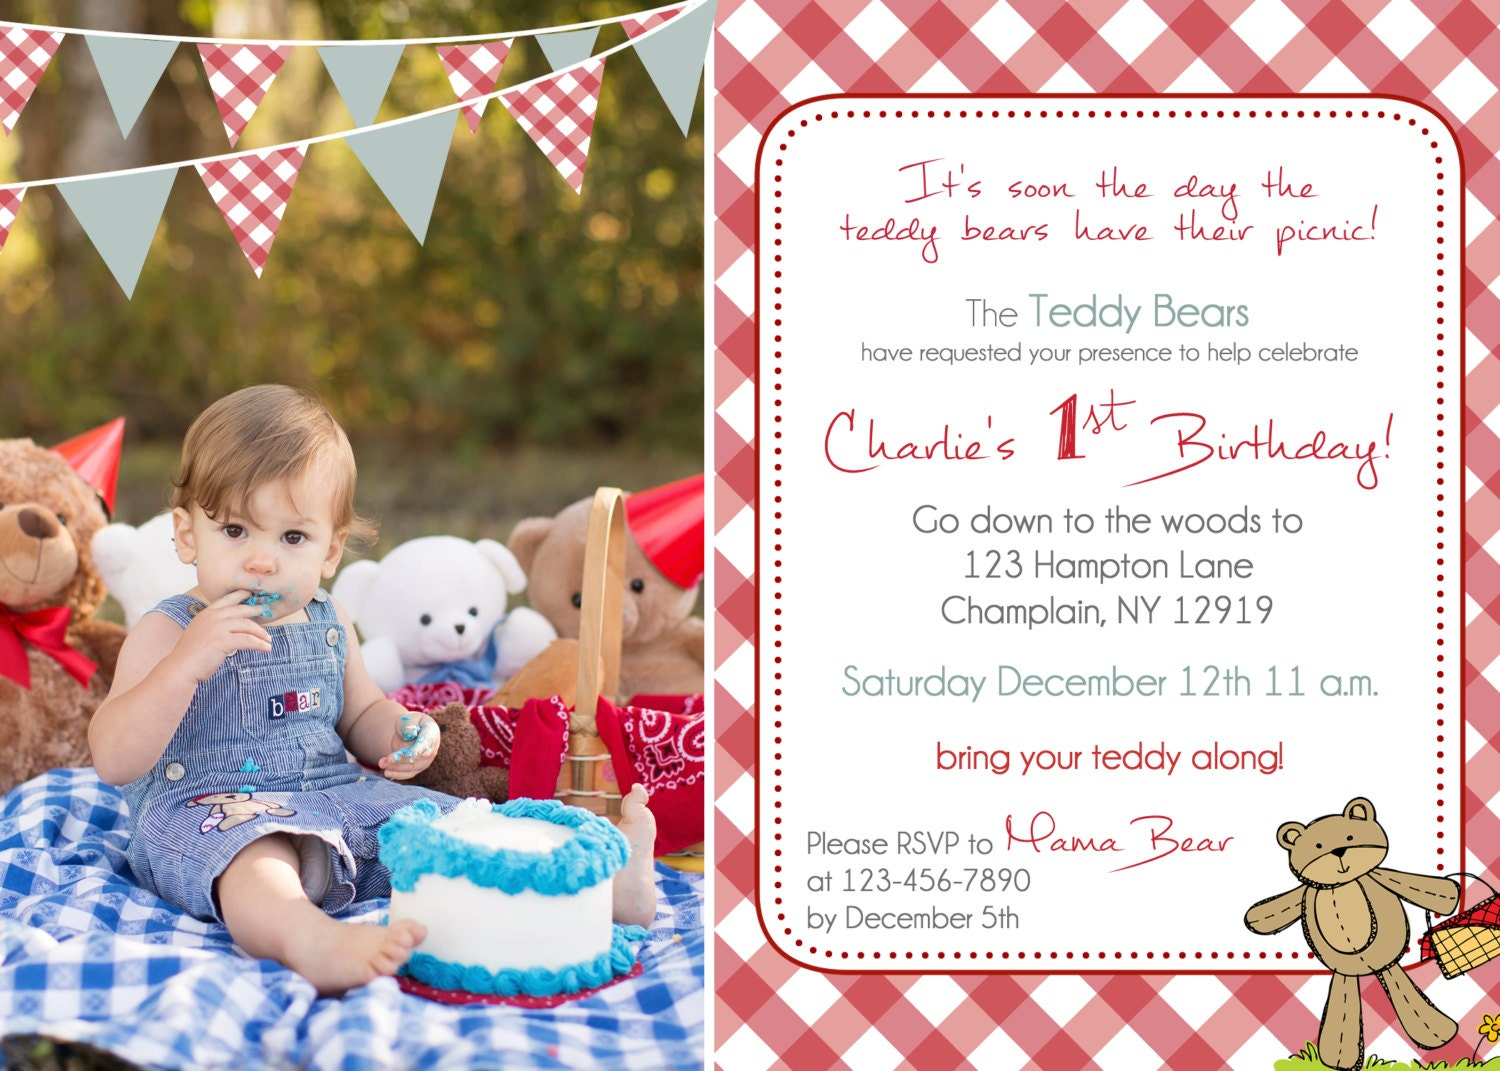 Teddy Bear Picnic birthday invitation you print